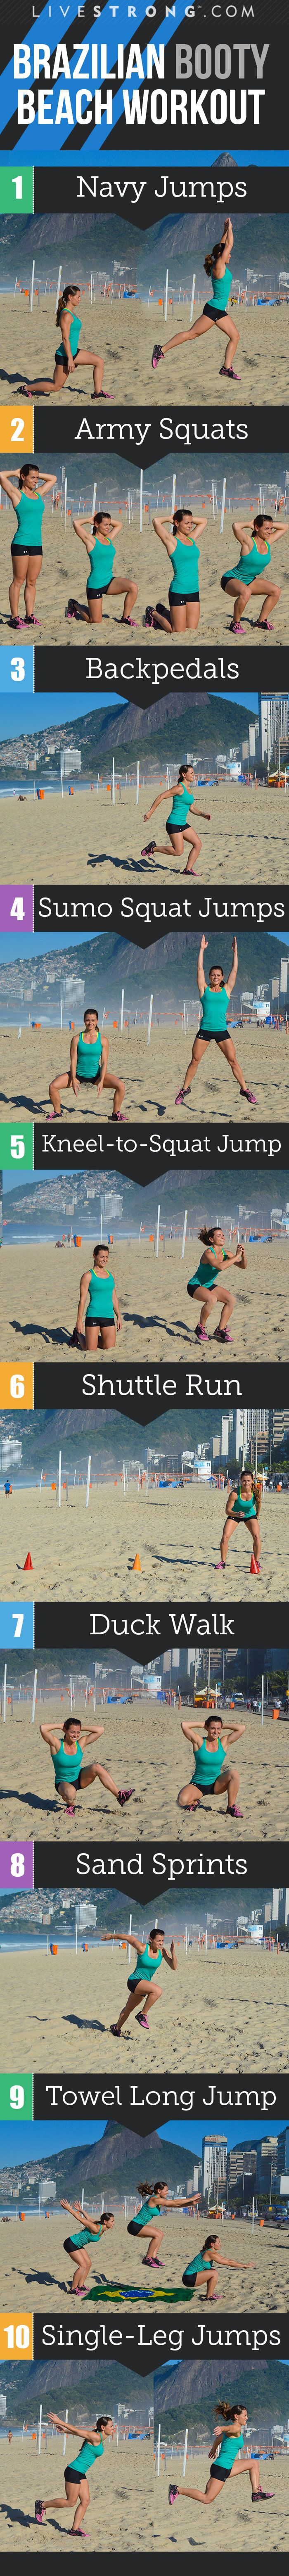 The ultimate beach-bum workout!